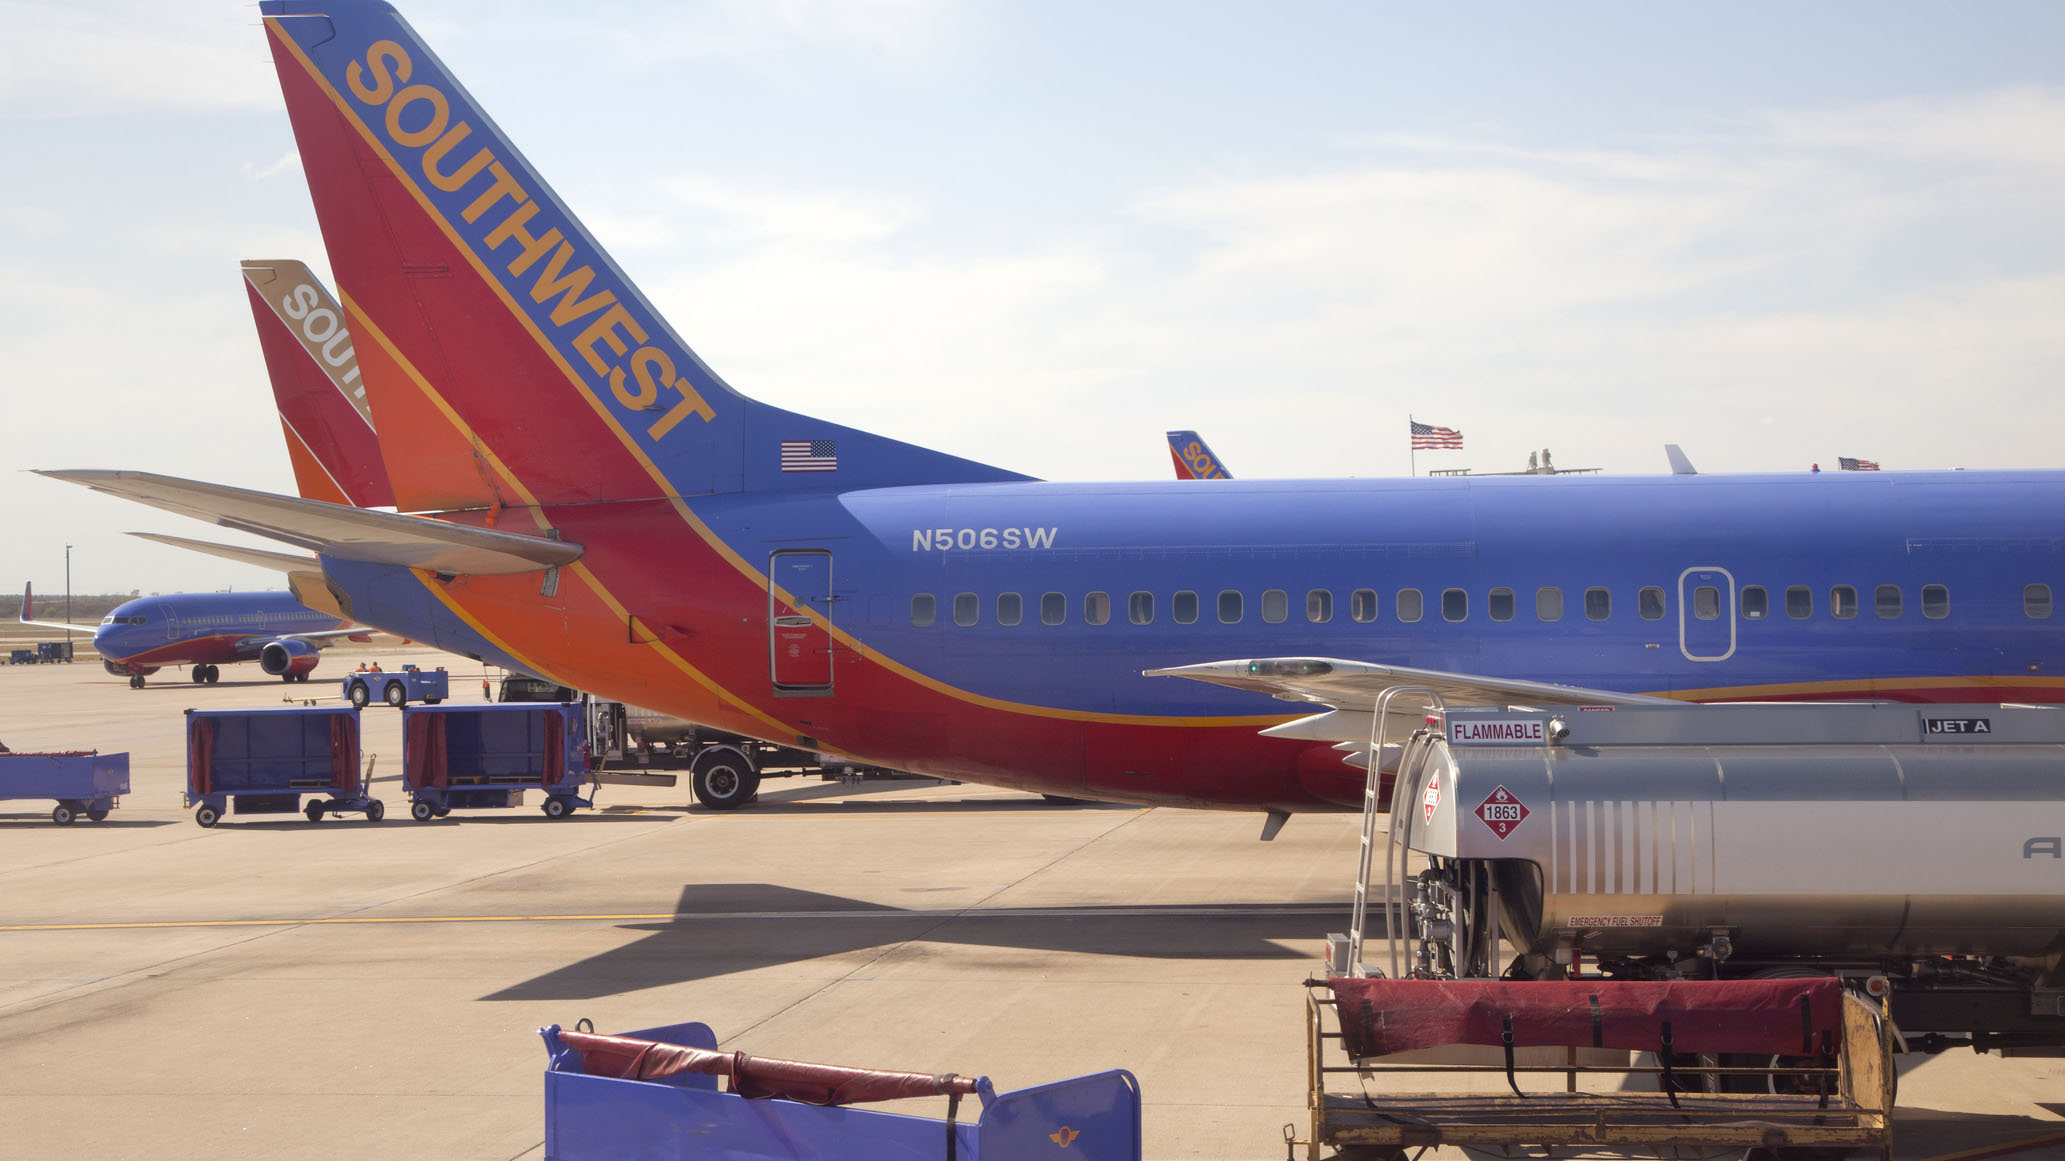 Westlake Legal Group Southwest-airlines Southwest Airlines passenger says flight attendant complained about 'Muslim woman' for 'making people uncomfortable' Michael Hollan fox-news/travel/general/airlines fox news fnc/travel fnc d72b242d-2750-54fb-810f-dc5e9658d688 article